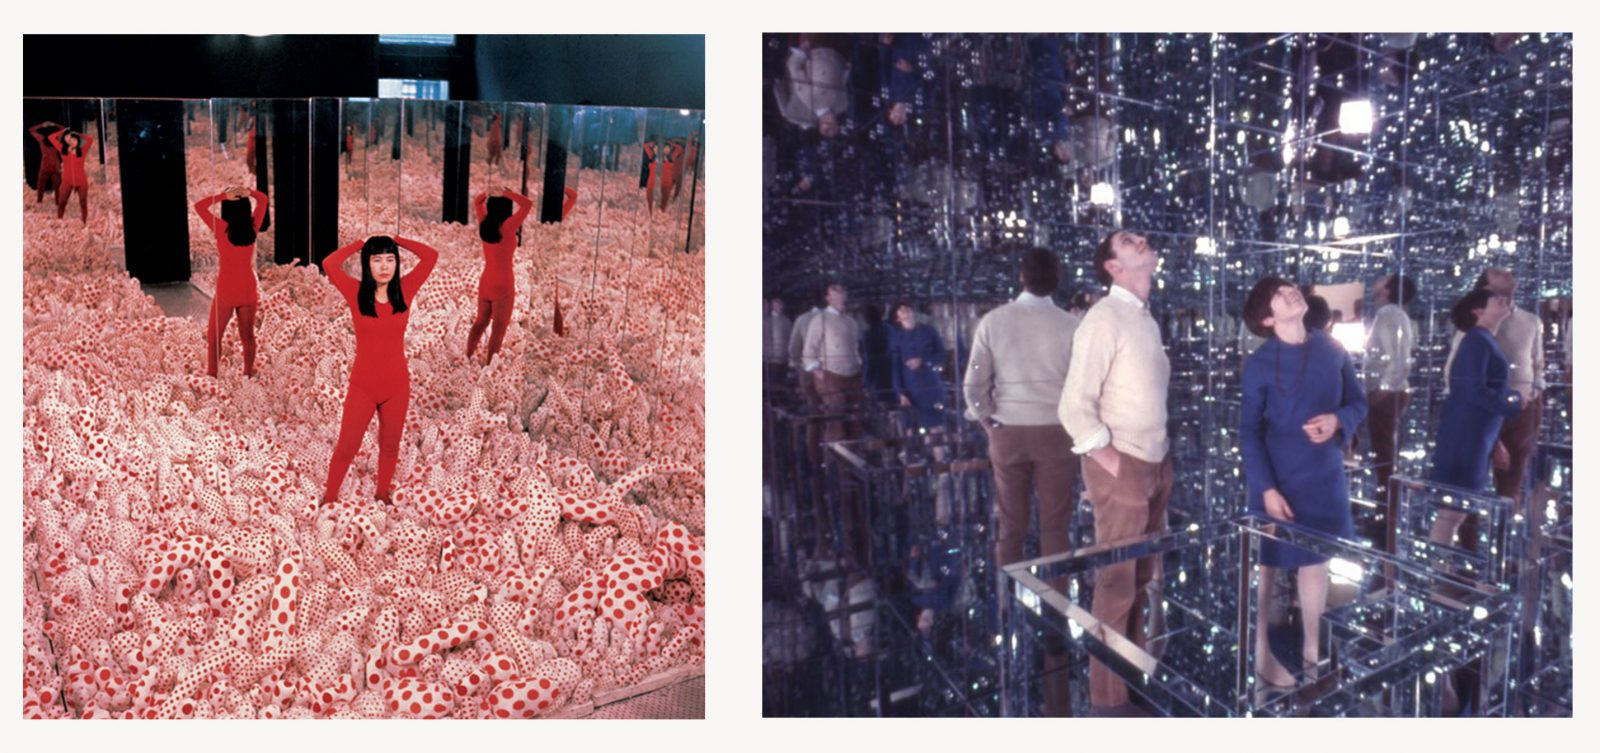 Juxtaposition of two photographs with on the left Yayoi Kusama wearing a red pijama standing among phallis in red polka dot fabric, standing n her Infinity Room no1, while on the right is two visitors inside a mirrored room looking at their reflection at the ceiling